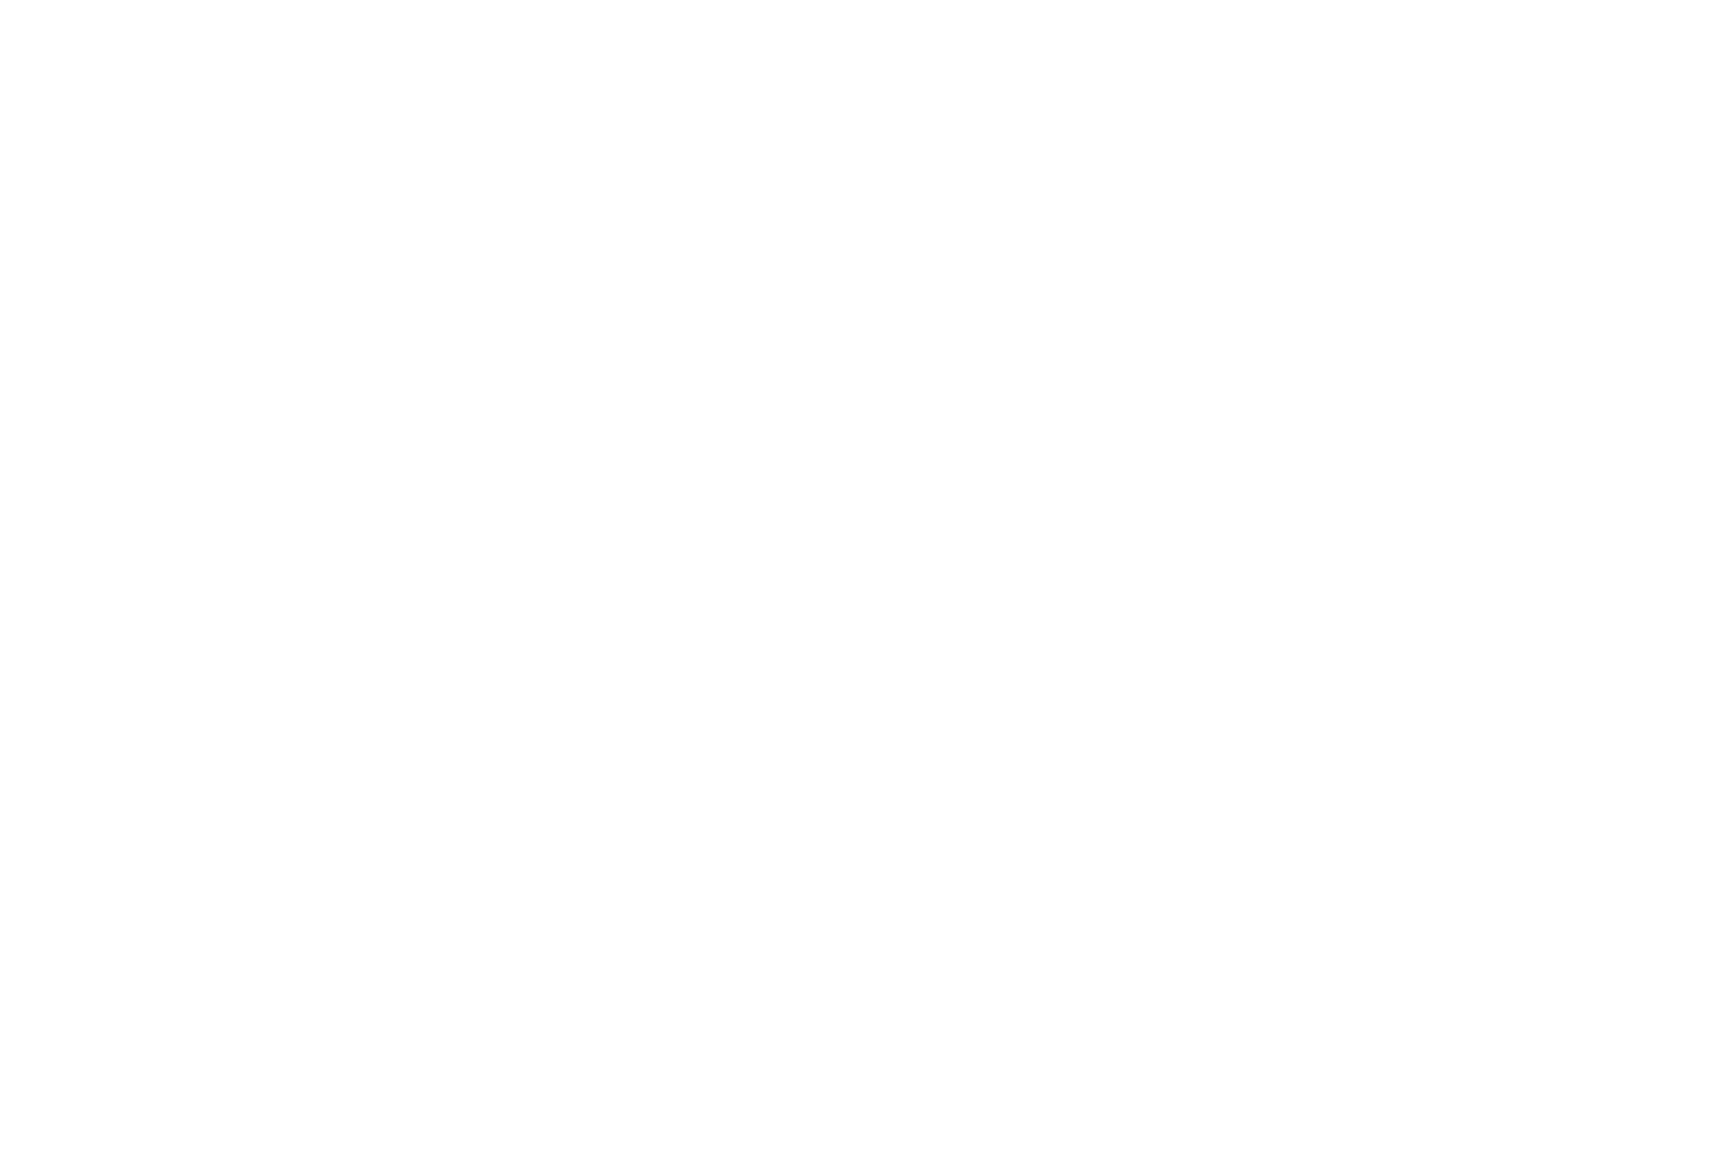 Christian Worldview Film Festival Best Short Film Award